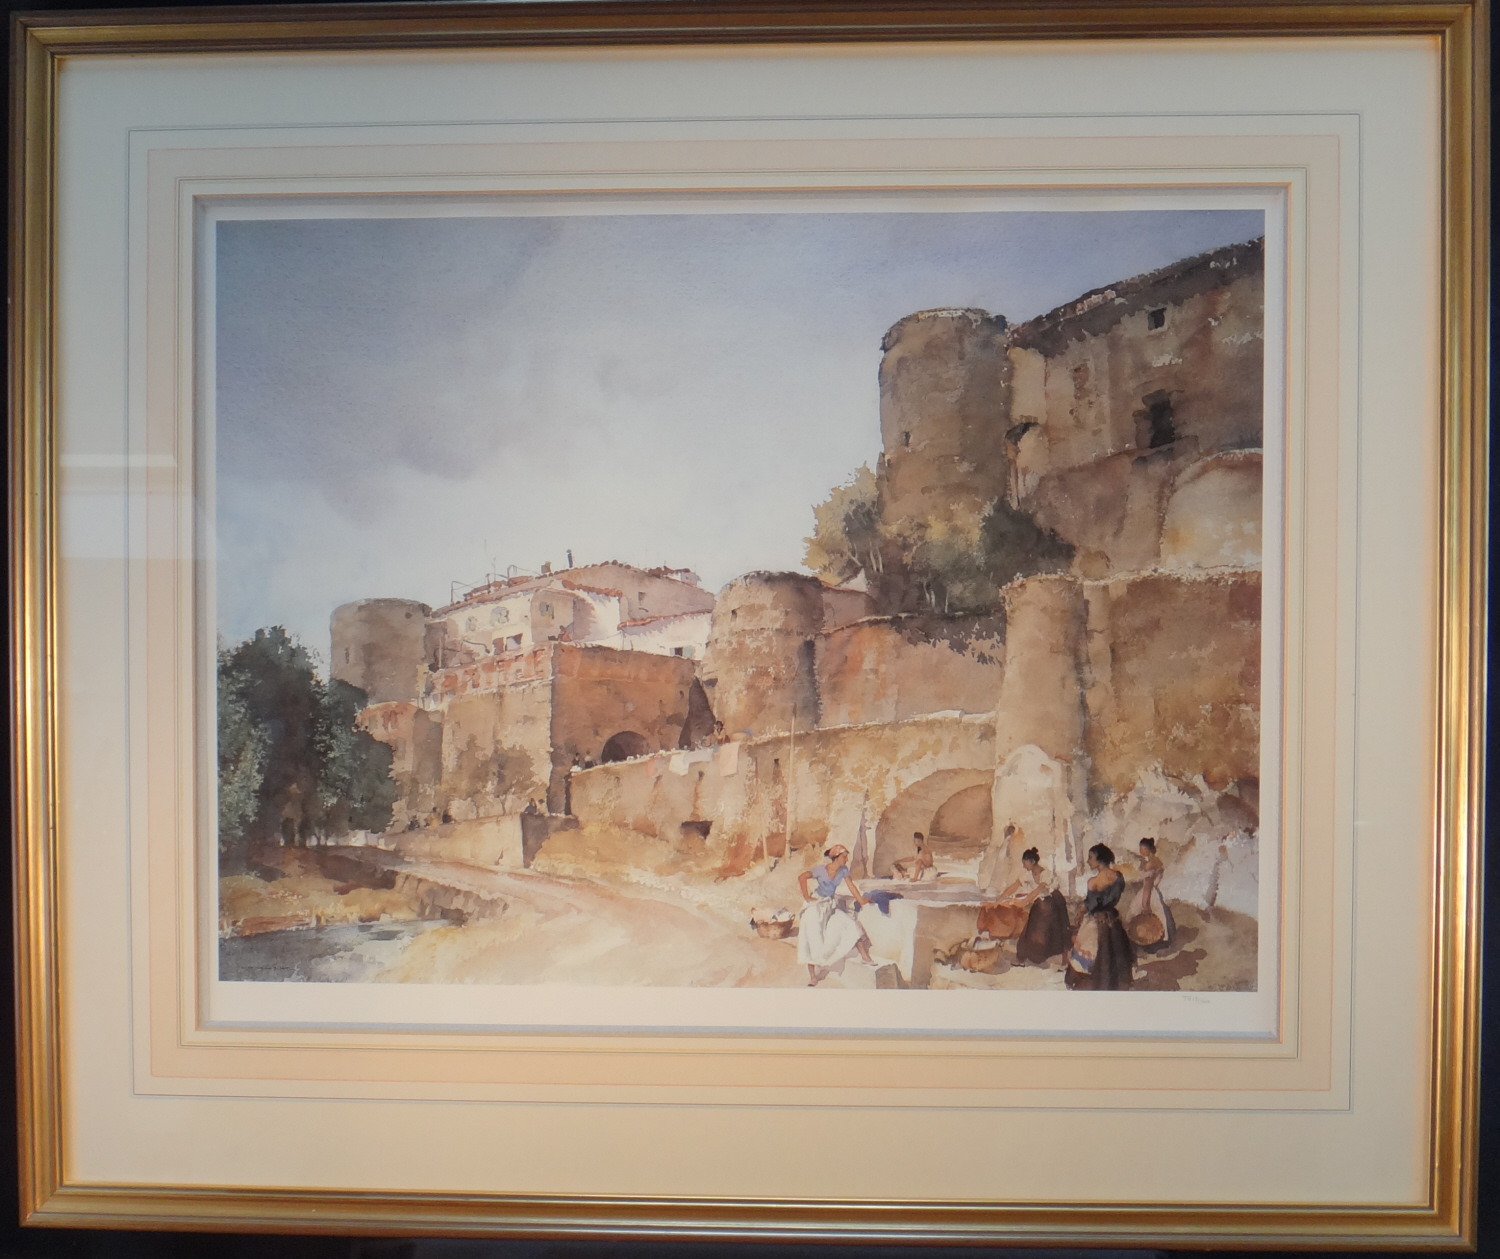 limited edition print, Gossipers at Le Castellet, sir william russell flint